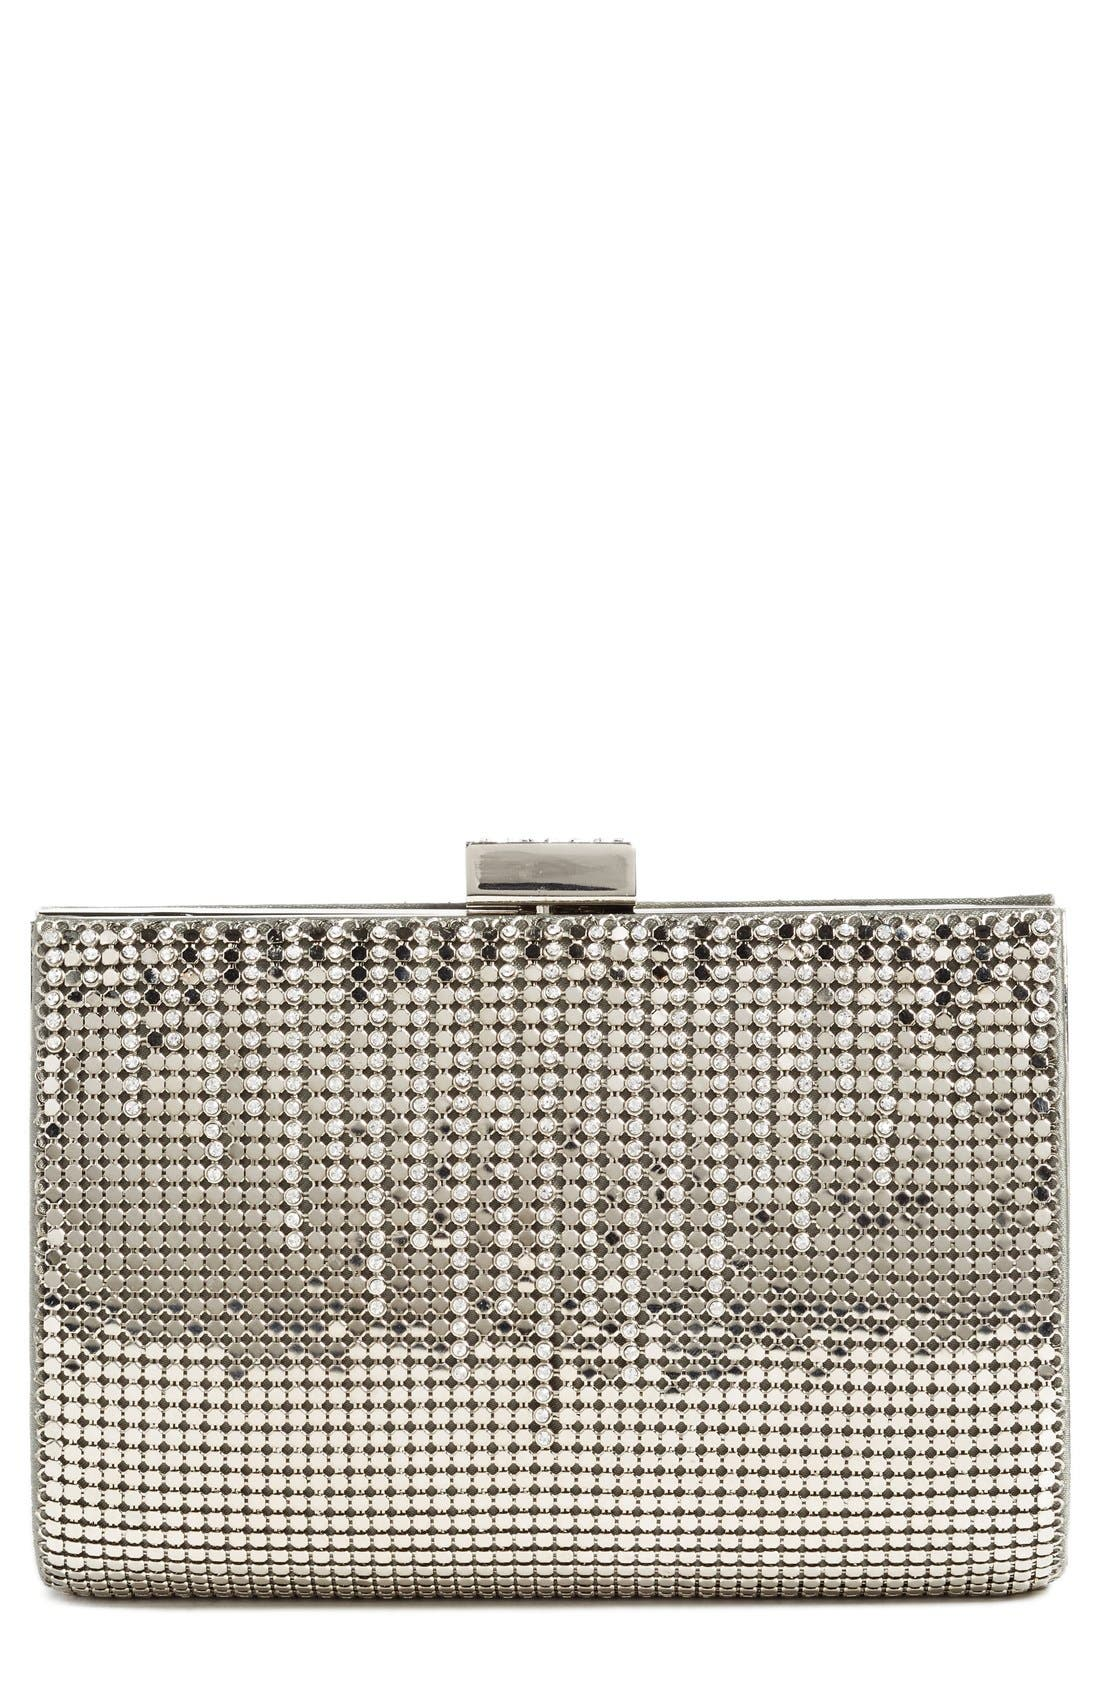 'Diamond Drips' Evening Clutch,                             Main thumbnail 1, color,                             Pewter